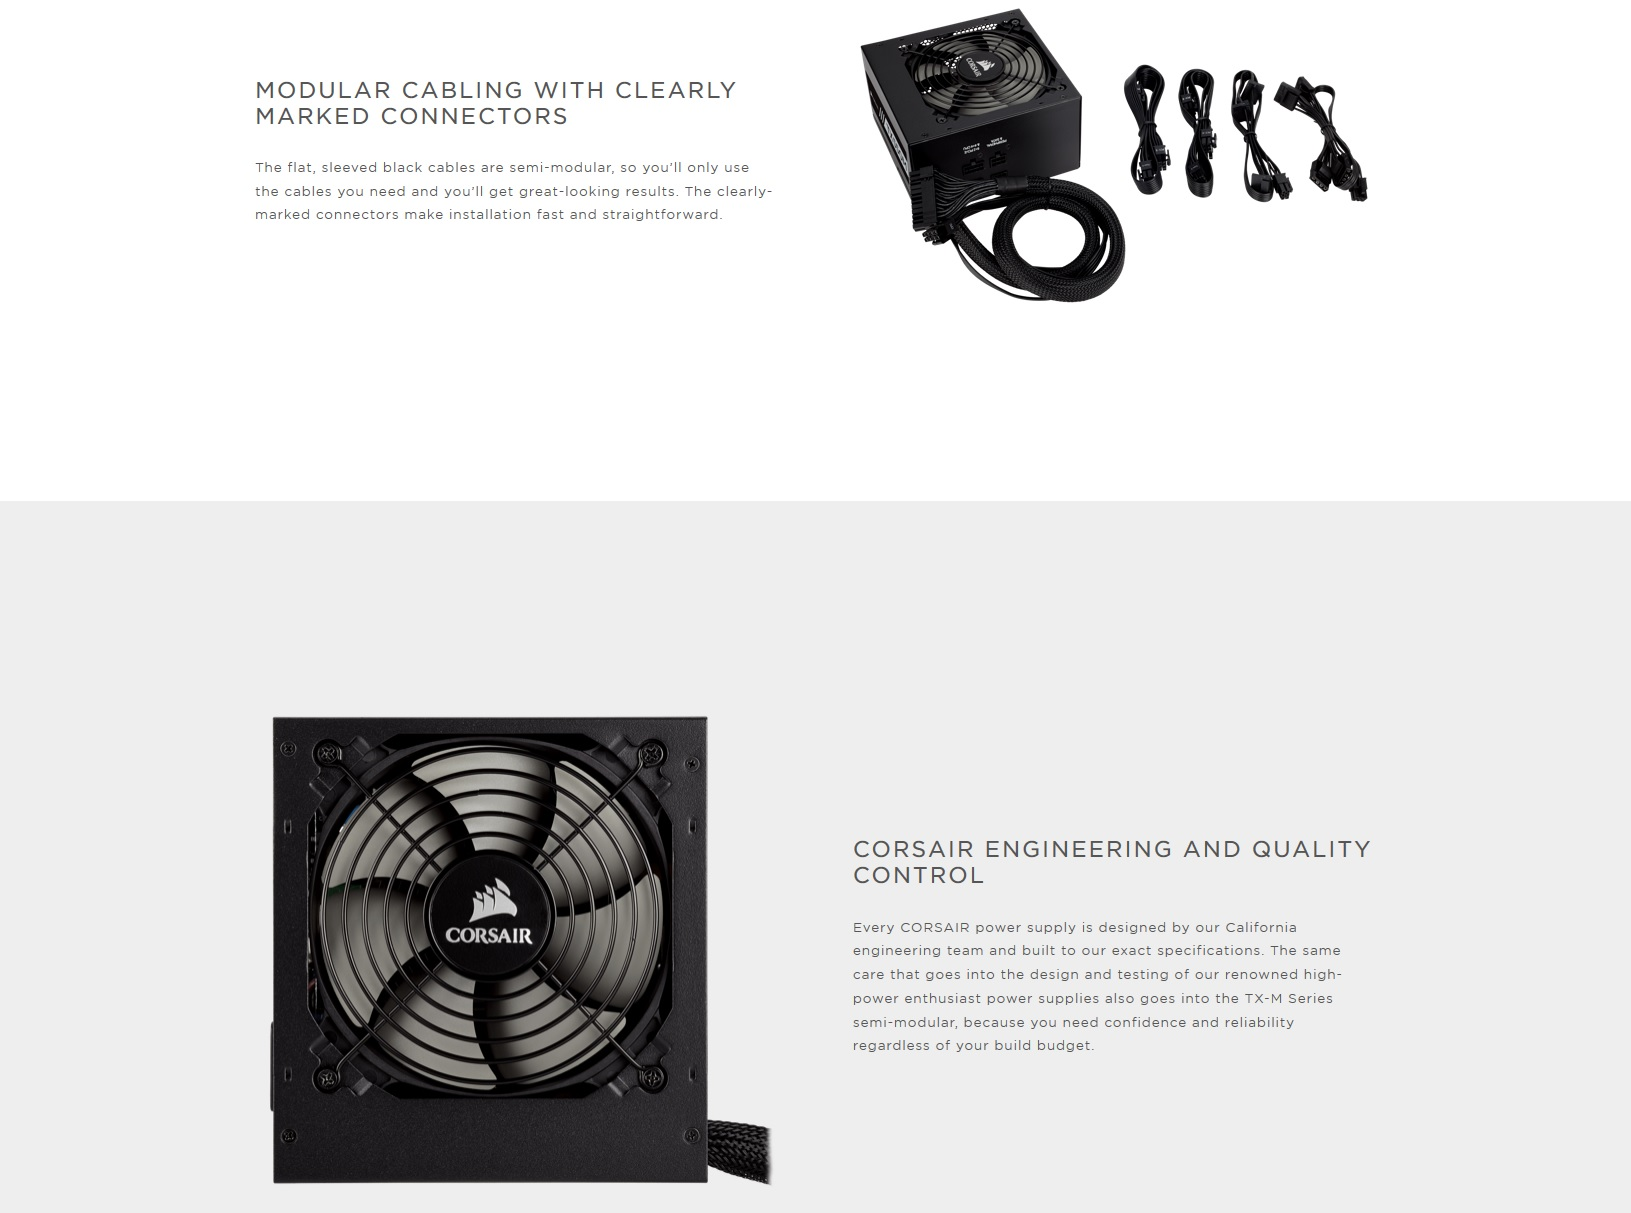 A large marketing image providing additional information about the product Corsair TX550 550W 80PLUS Gold Semi-Modular Power Supply - Additional alt info not provided